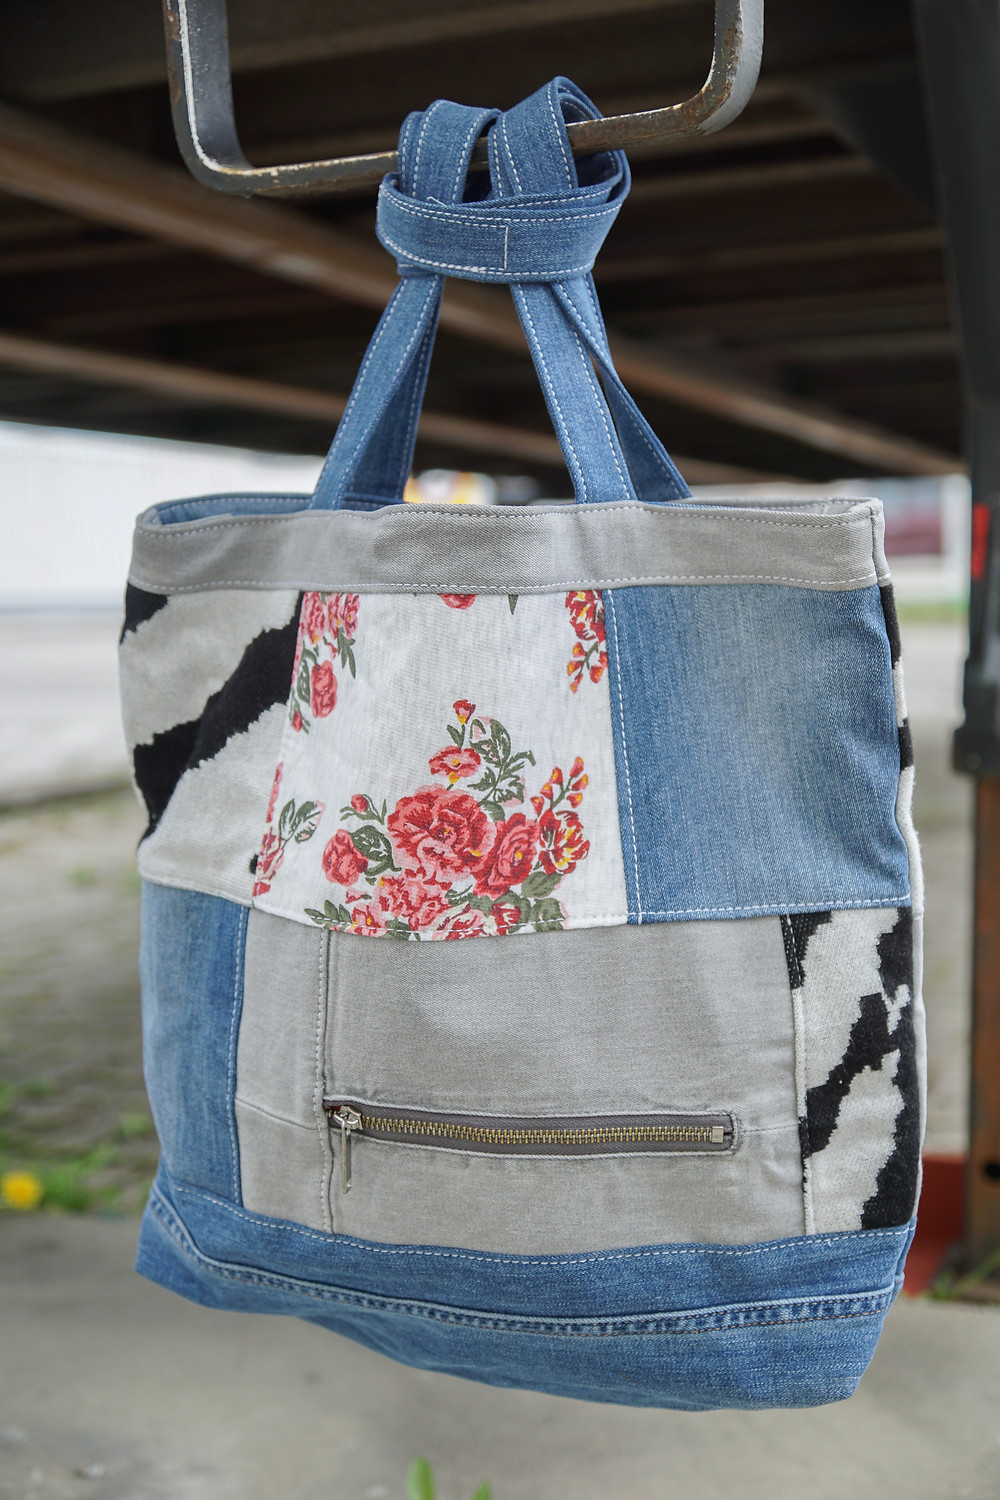 personal upcycled shopper